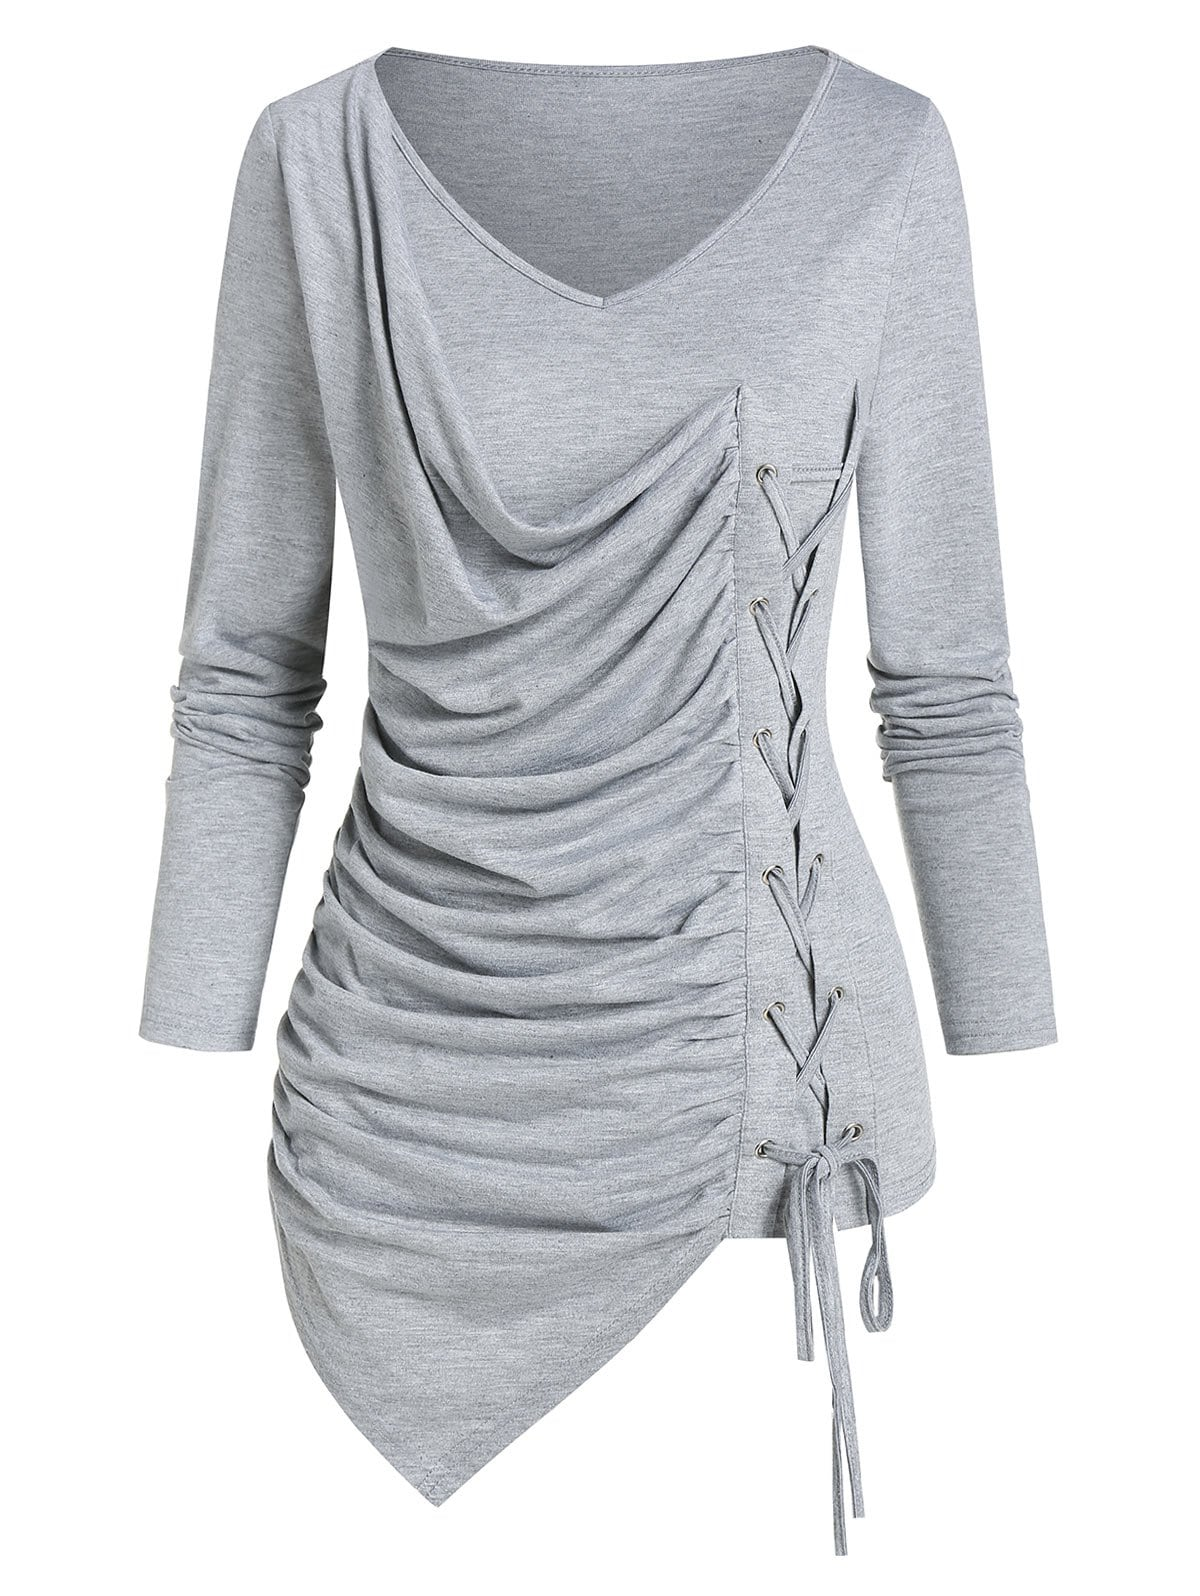 Plain V Neck Lace Up Asymmetrical T Shirt